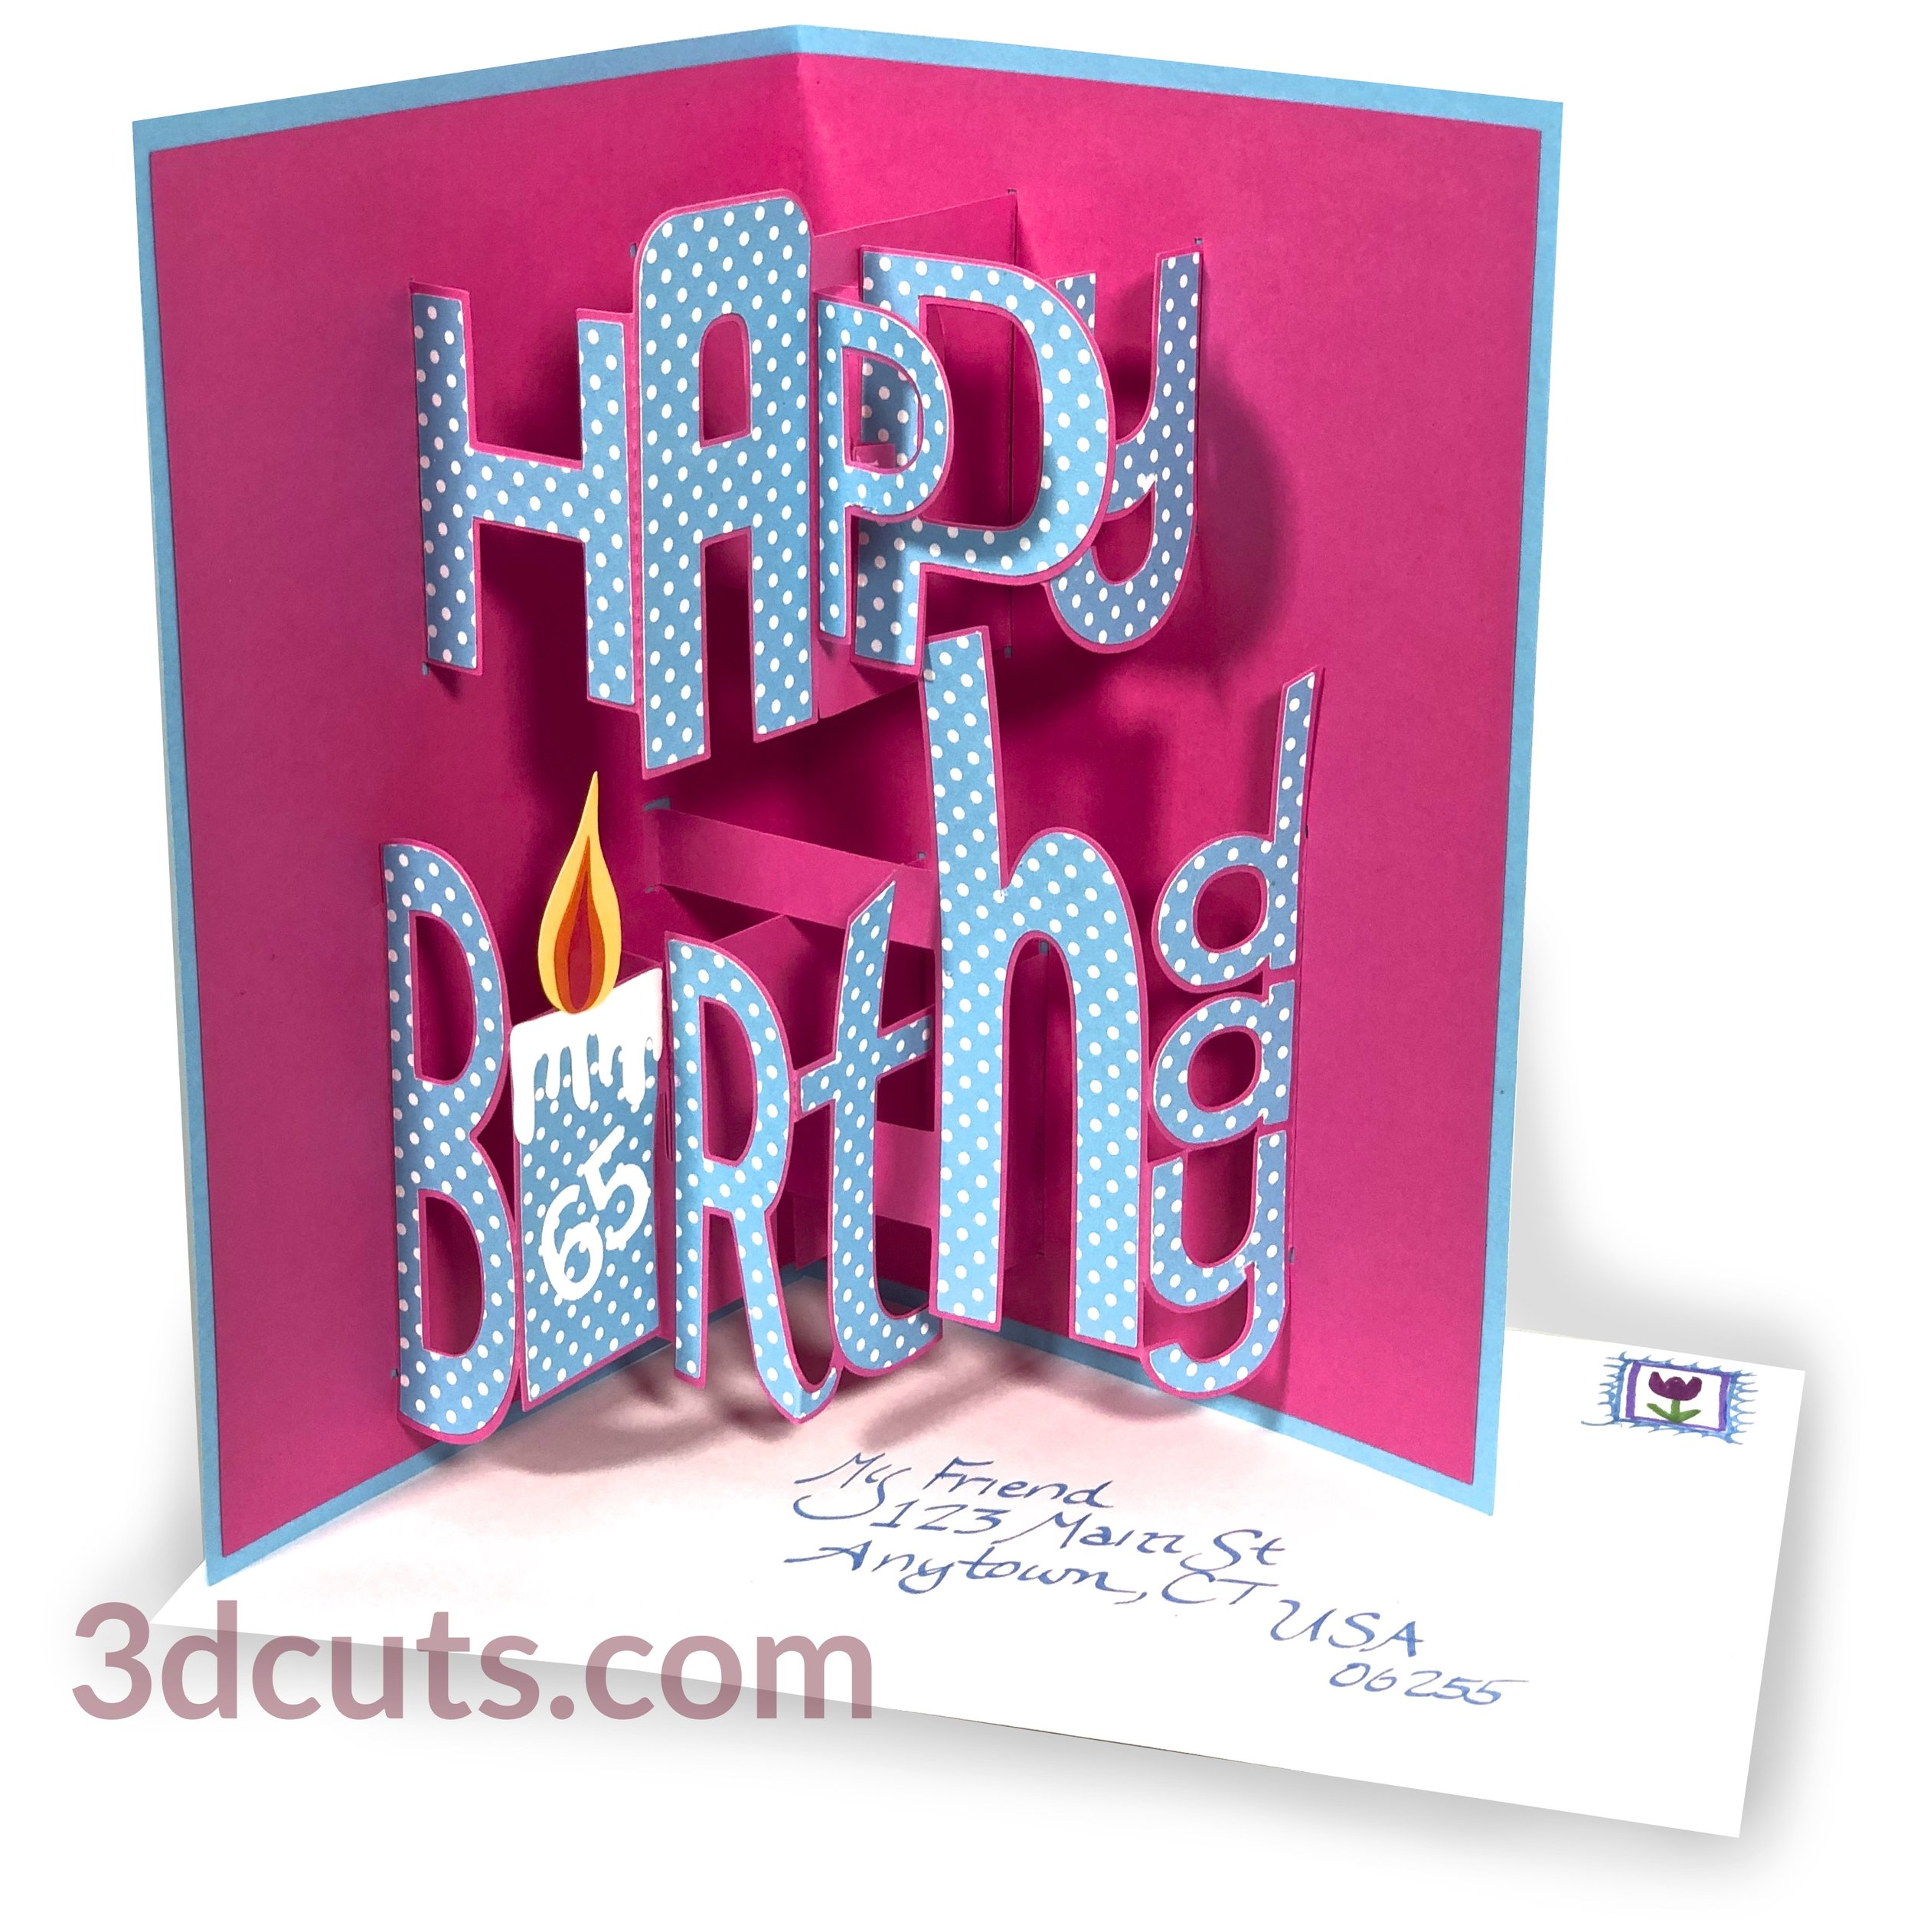 Happy Birthday Card Whimsy Font Pop Up 3dcuts Com